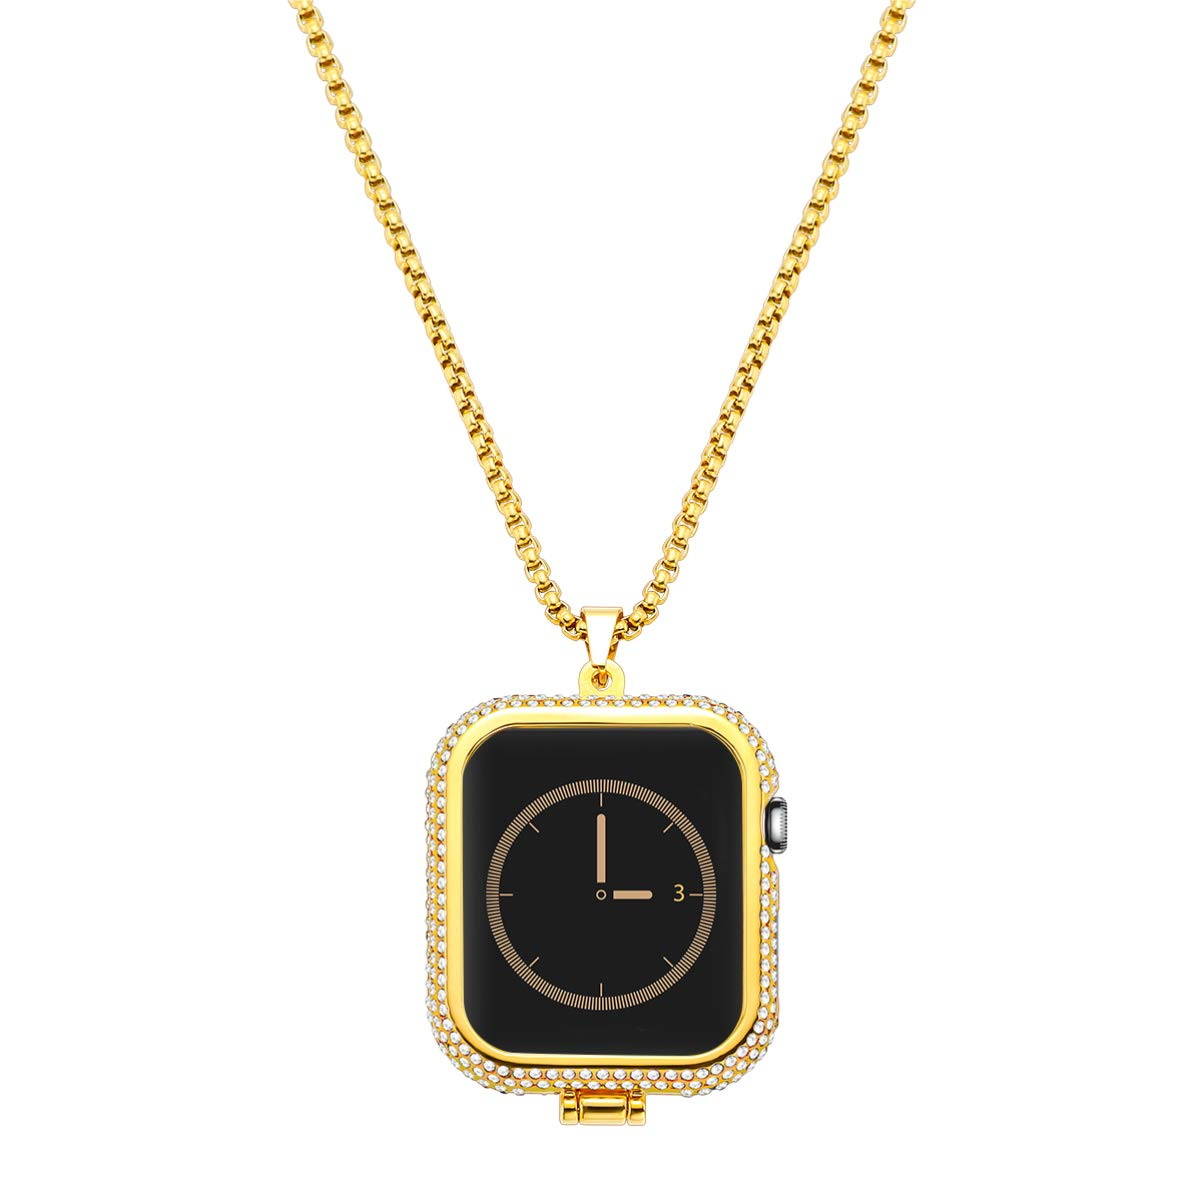 NICERIO NICERIO Compatible with Apple Watch Series 4 Diamond Metal iWatch Necklace Pendant Frame Protective Case Bumper Golden (44mm) by NICERIO